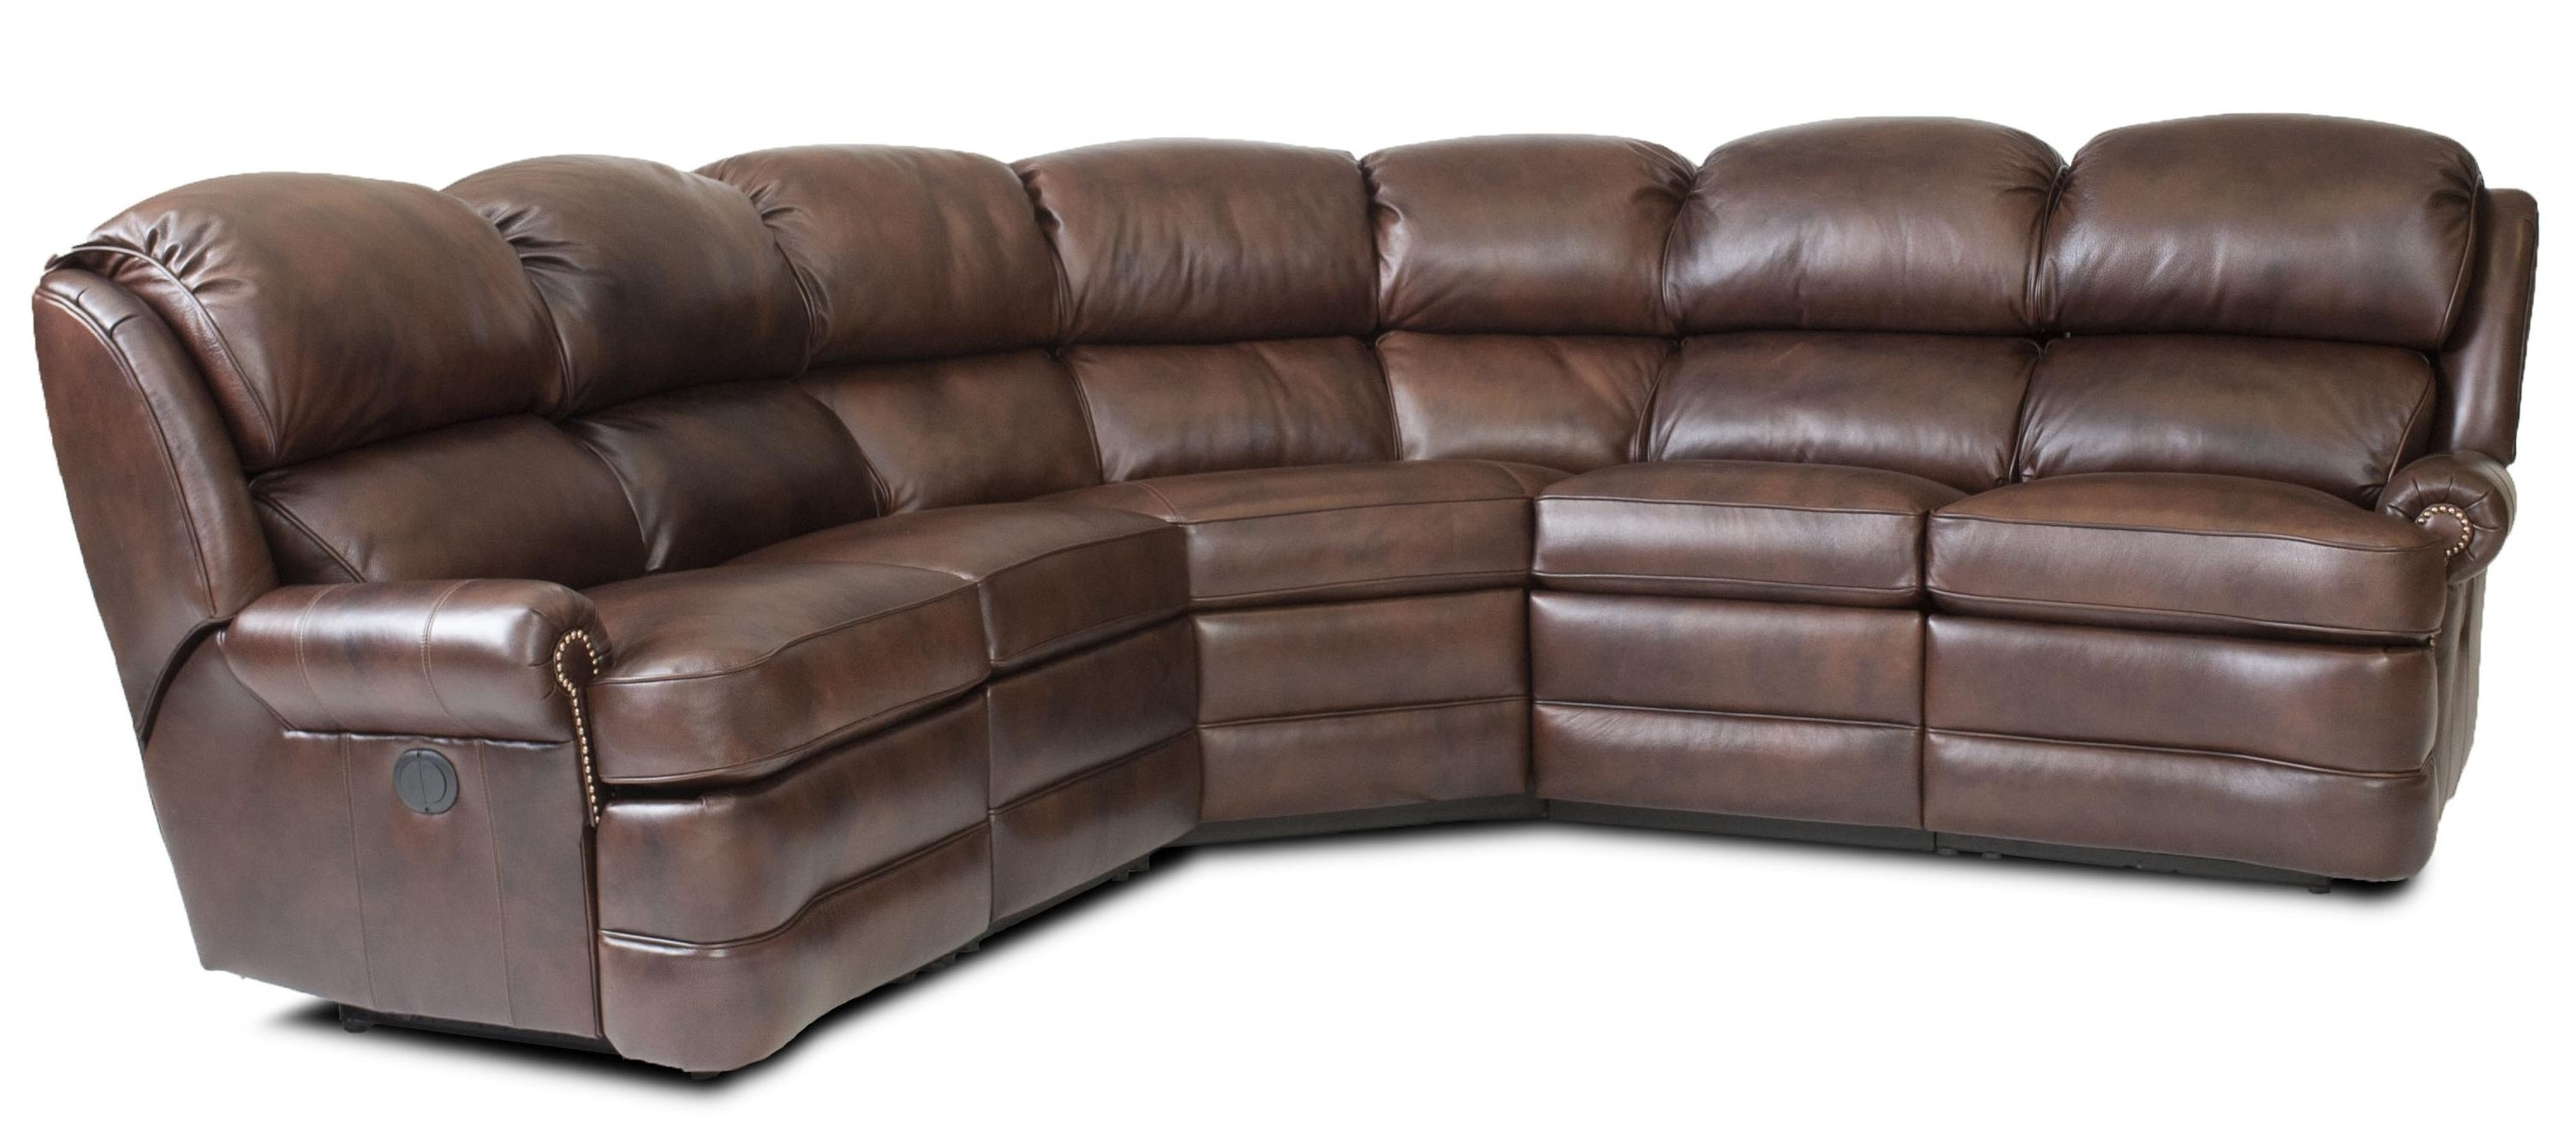 20 The Best Sectional Sofas Under 900 Inside Sectional Sofas Under (View 9 of 10)